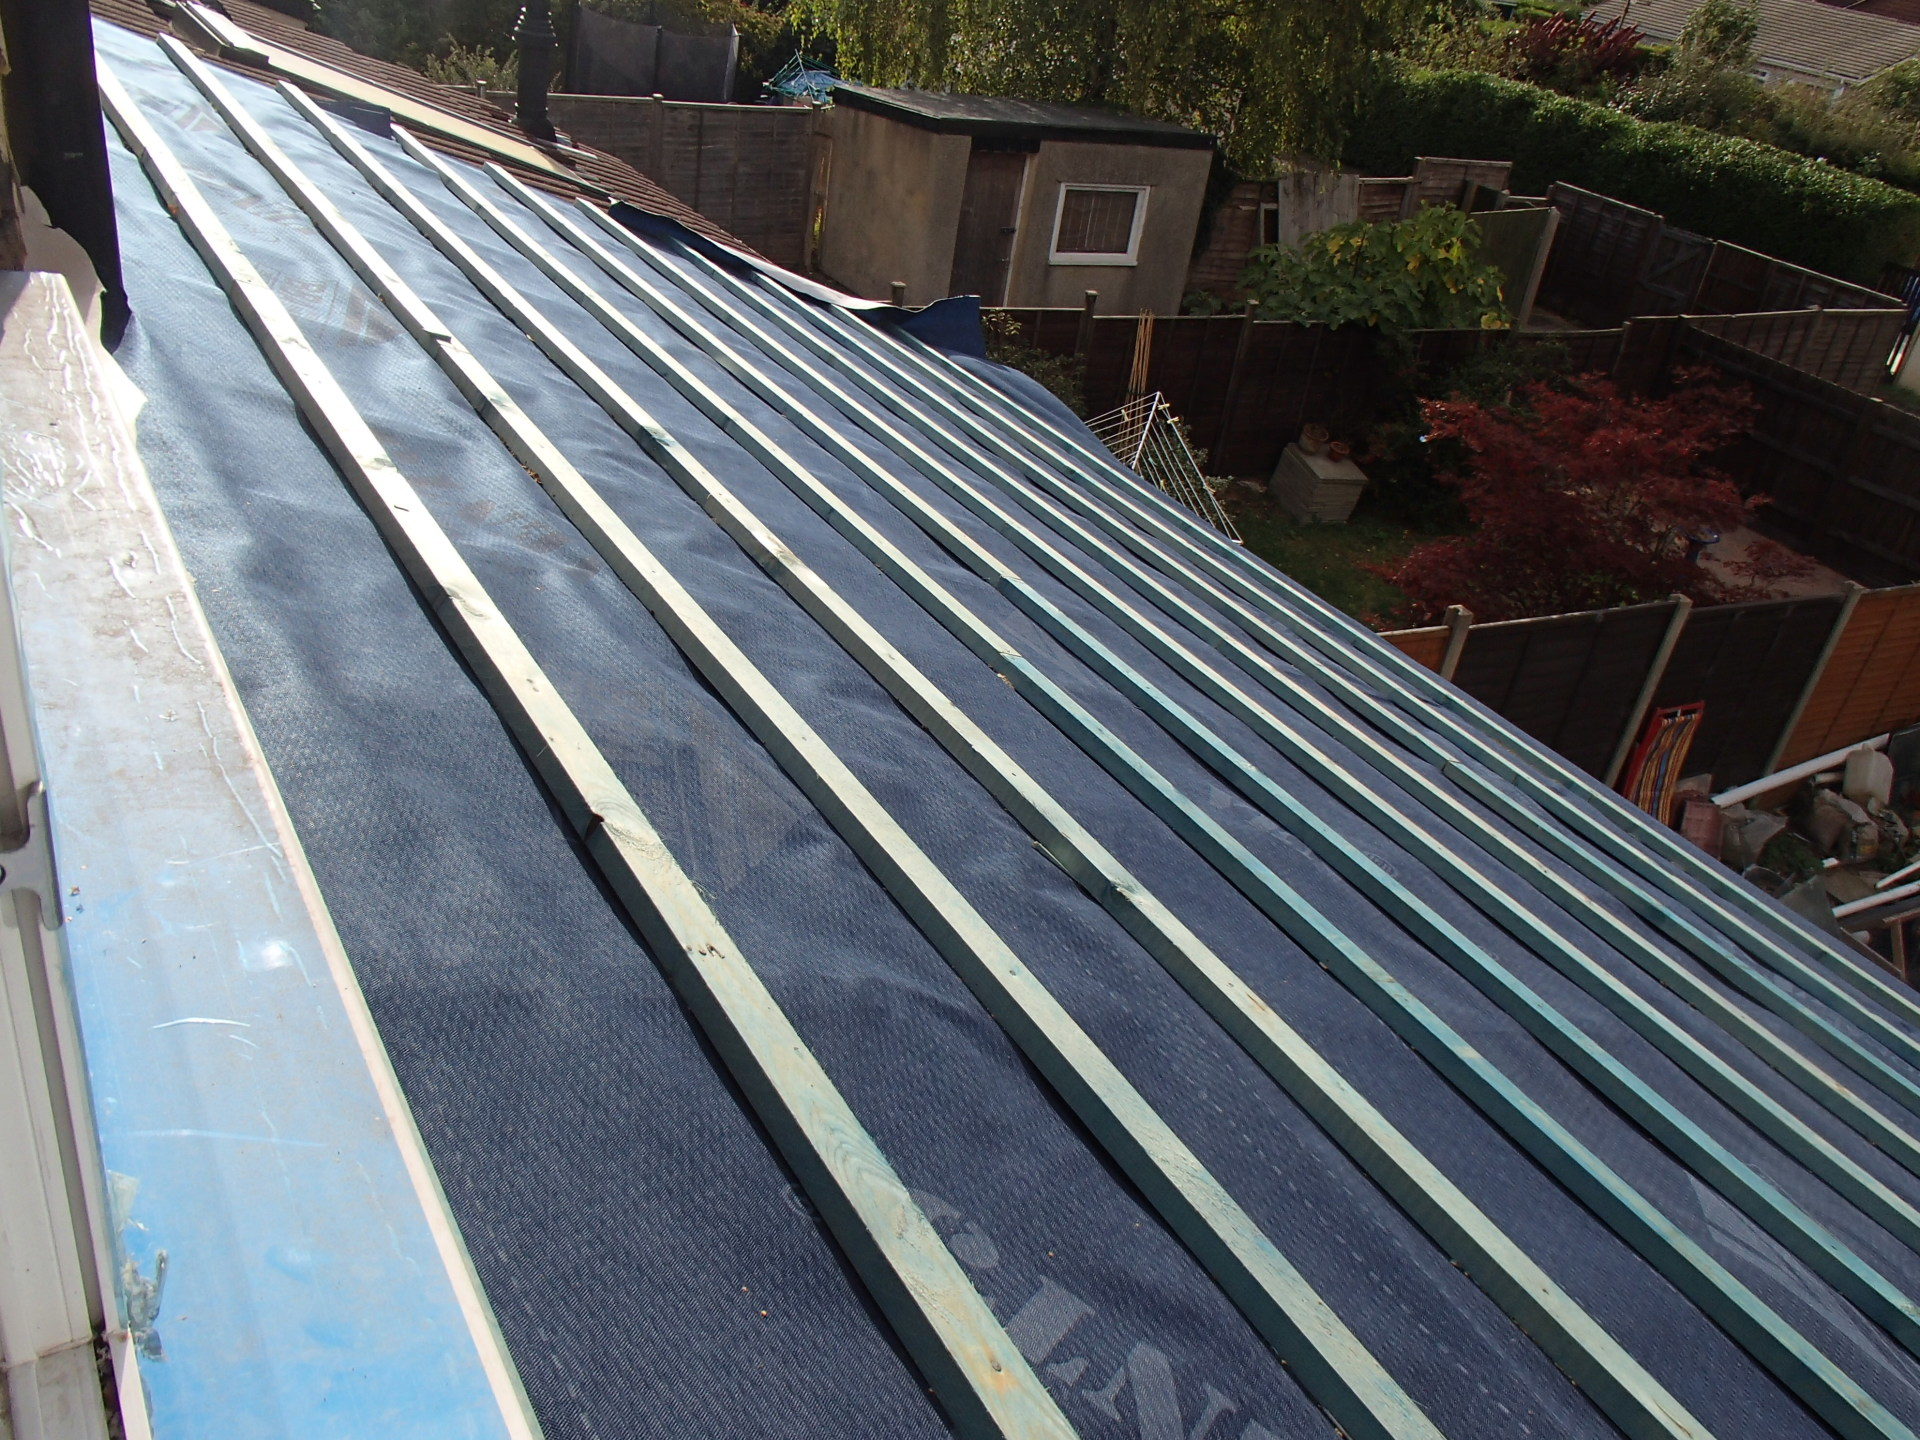 roofing, roofer, templecombe, somerset, dorset, builder